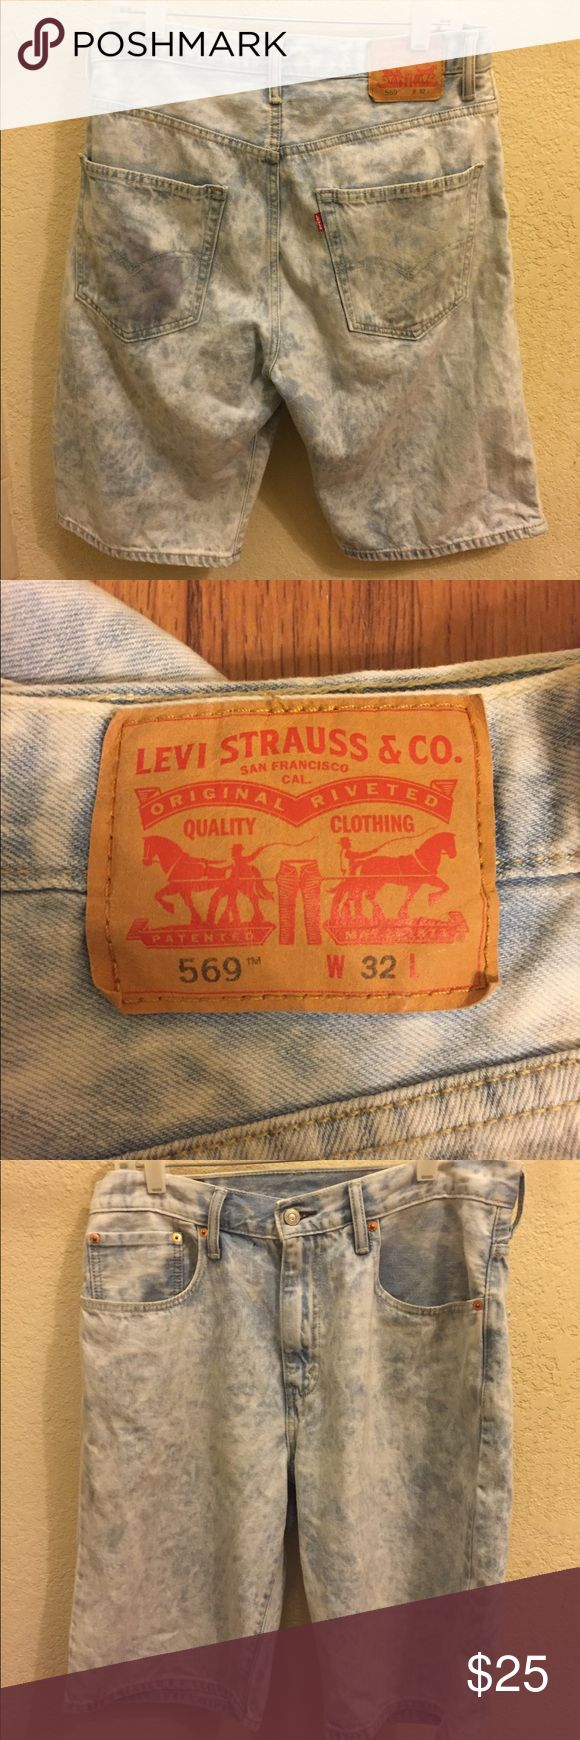 """Levis 569 Loose Stonewash Light Denim Jean Shorts Item Details: • Used: In great condition, no flaws. • Size: 32W (23"""" Long) • Color: Light Blue  Shipping & Handling: • Item will ship same or next business day after completed payment is received. This excludes weekends.  Note: This item is extremely rare to find in this size and condition. Everything is 100% authentic guaranteed or your money will be refunded in full payment.  Feel free to ask me any questions. Levi's Shorts Jean Shorts"""